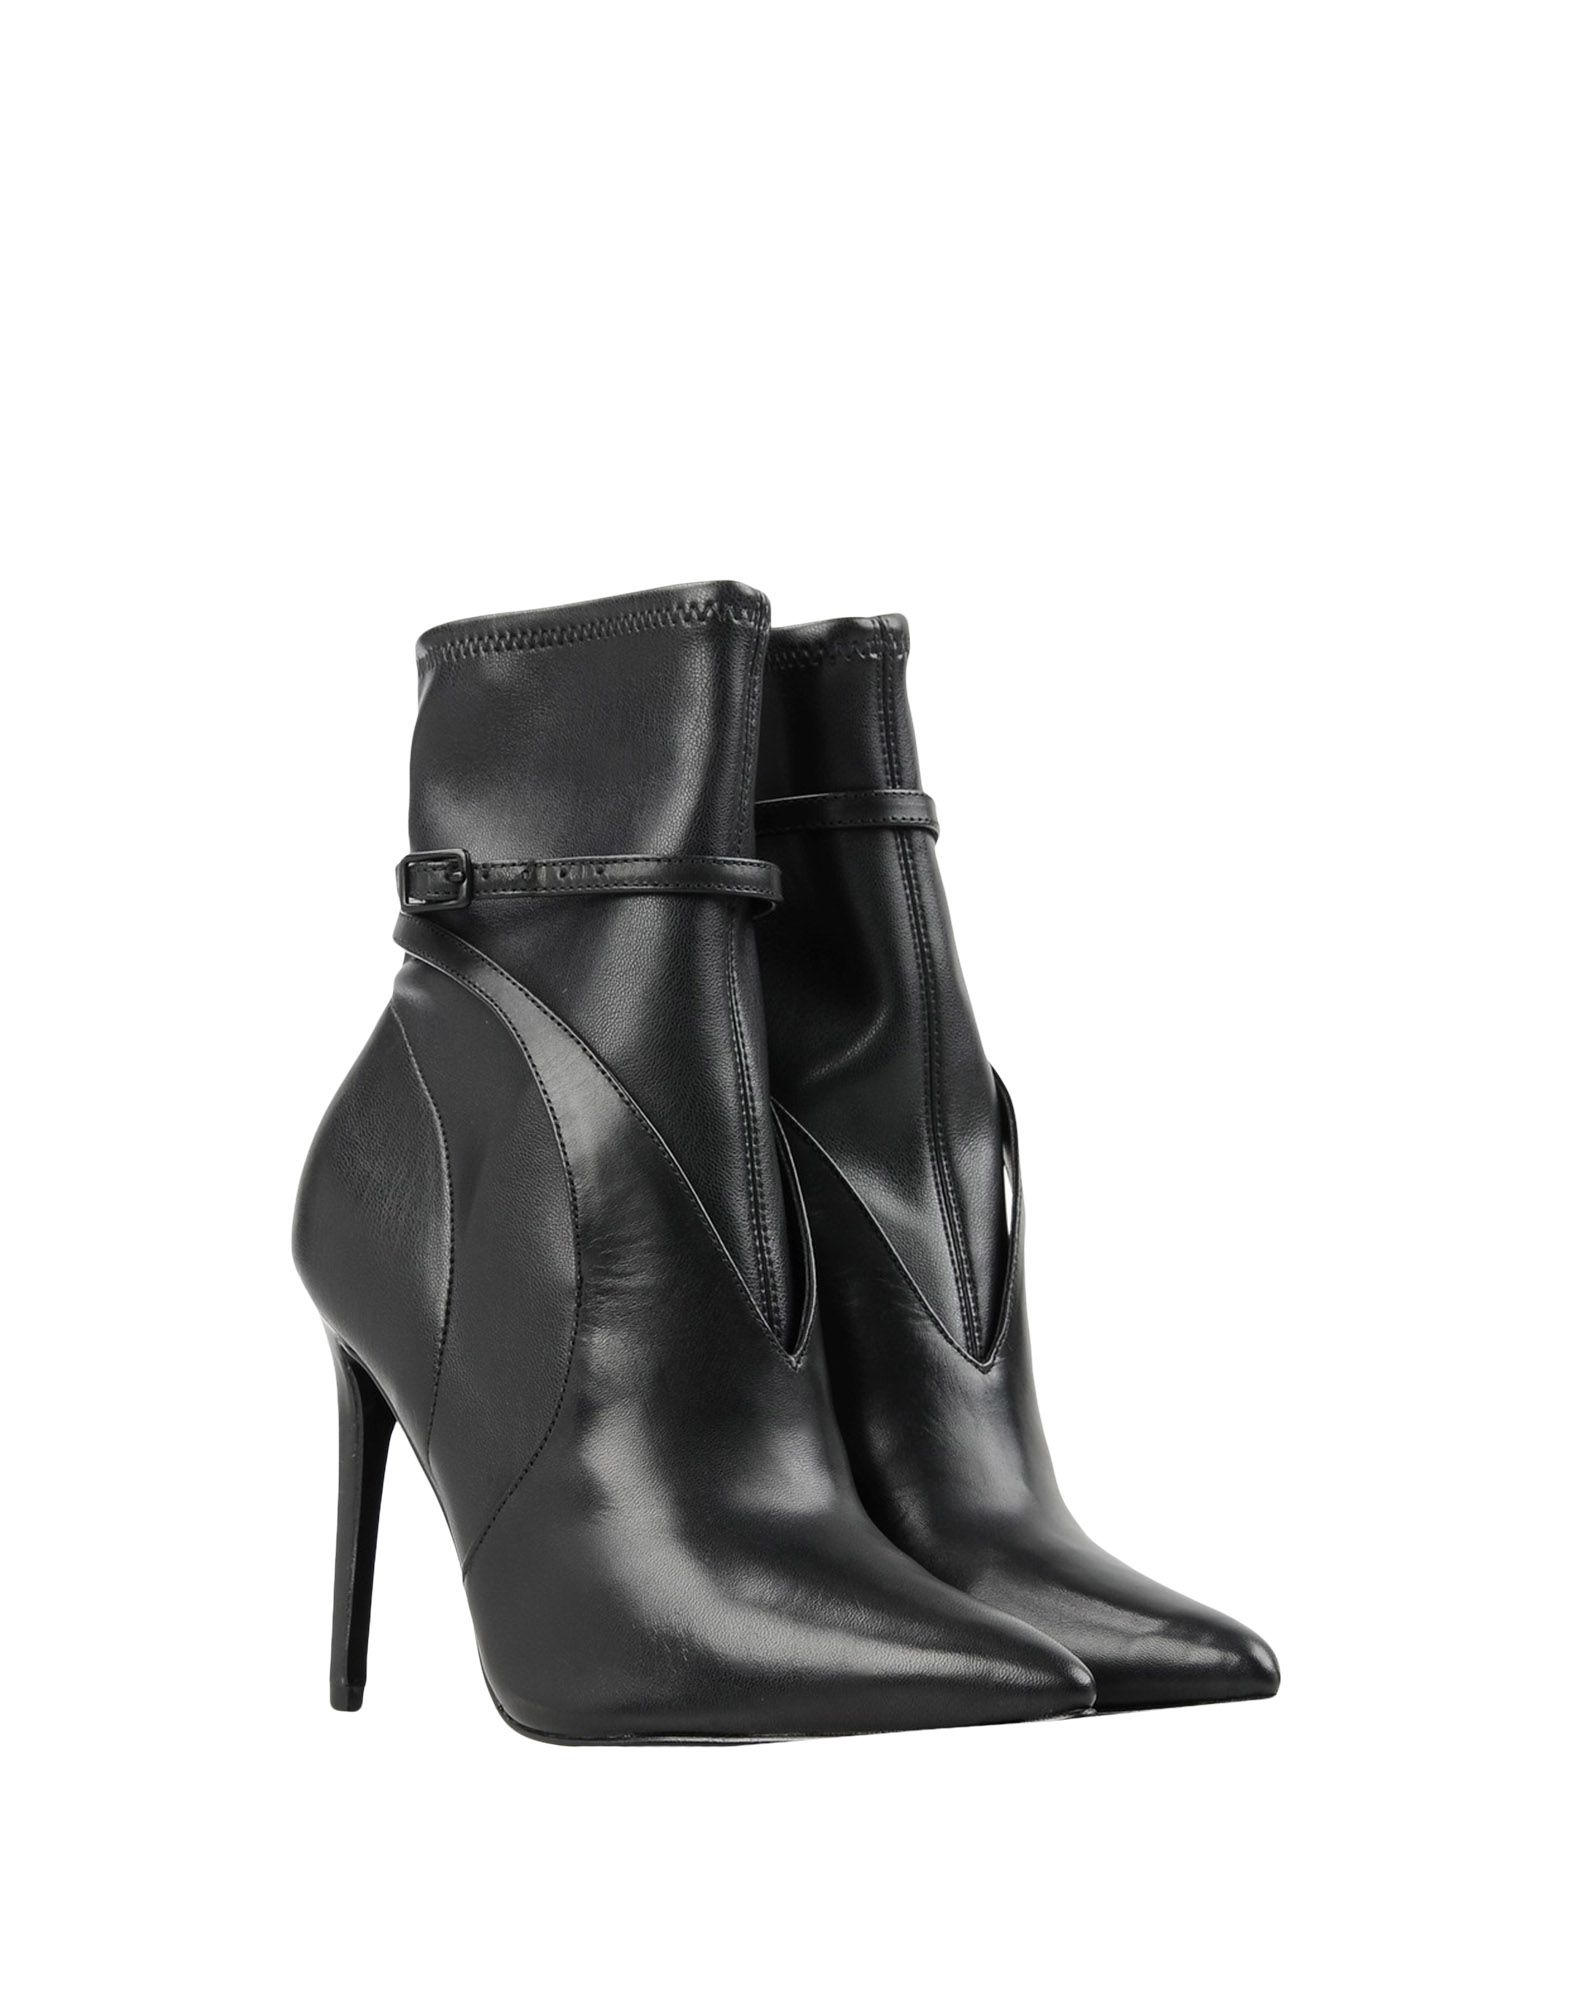 Kendall + Kylie Ankle Boot - Women Boots Kendall + Kylie Ankle Boots Women online on  Canada - 11324220FK 712d6b